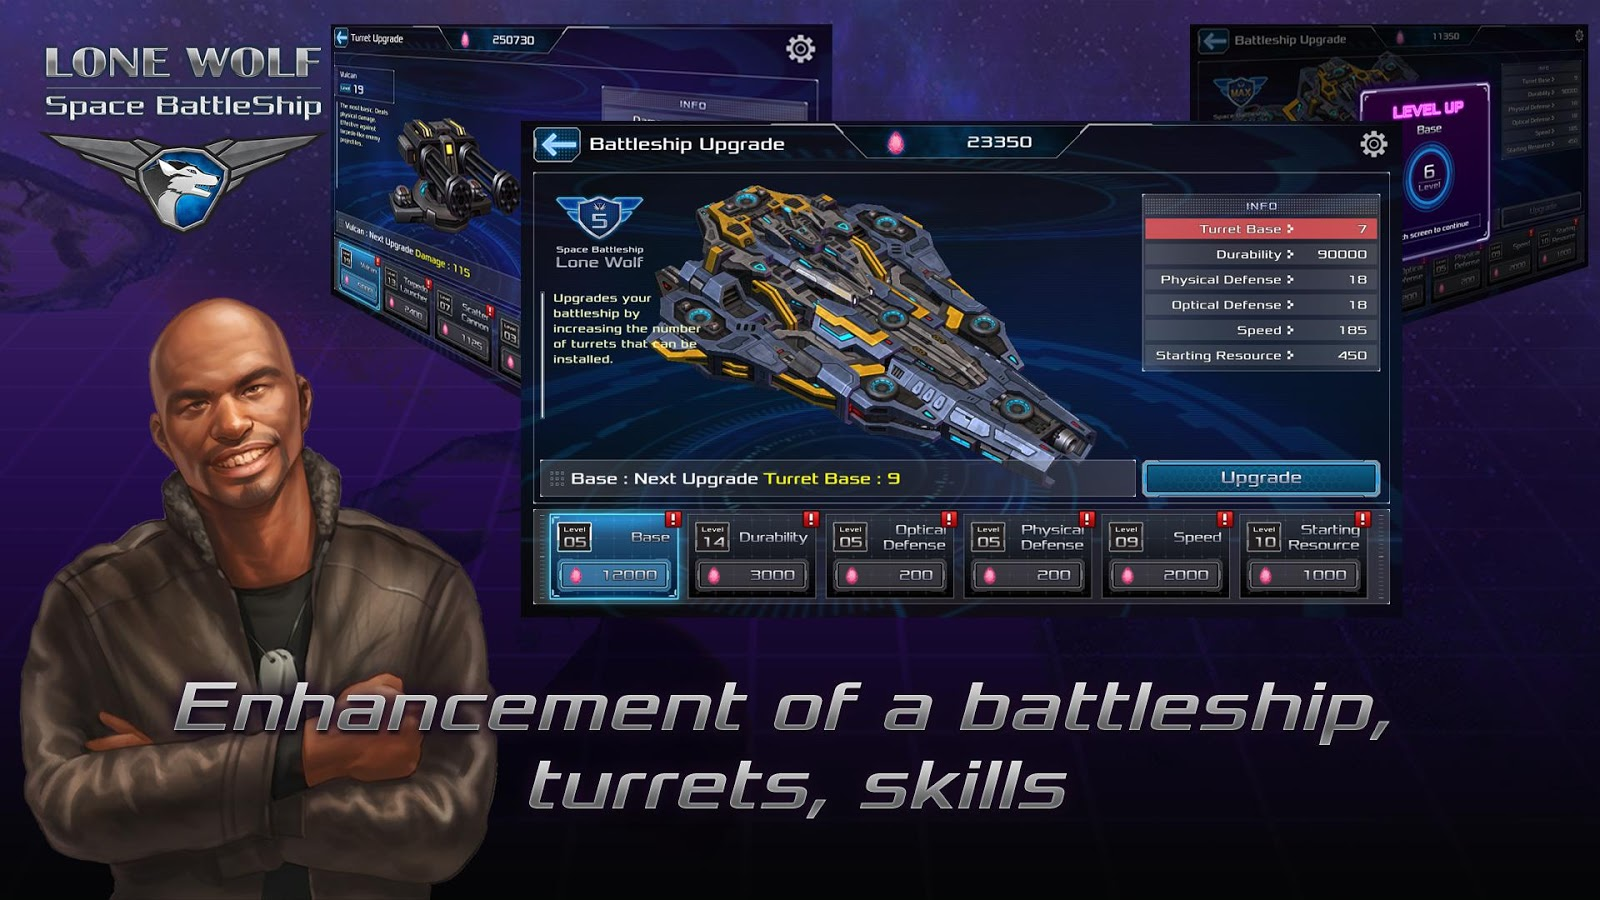 Battleship Lonewolf - Space TD Screenshot 3